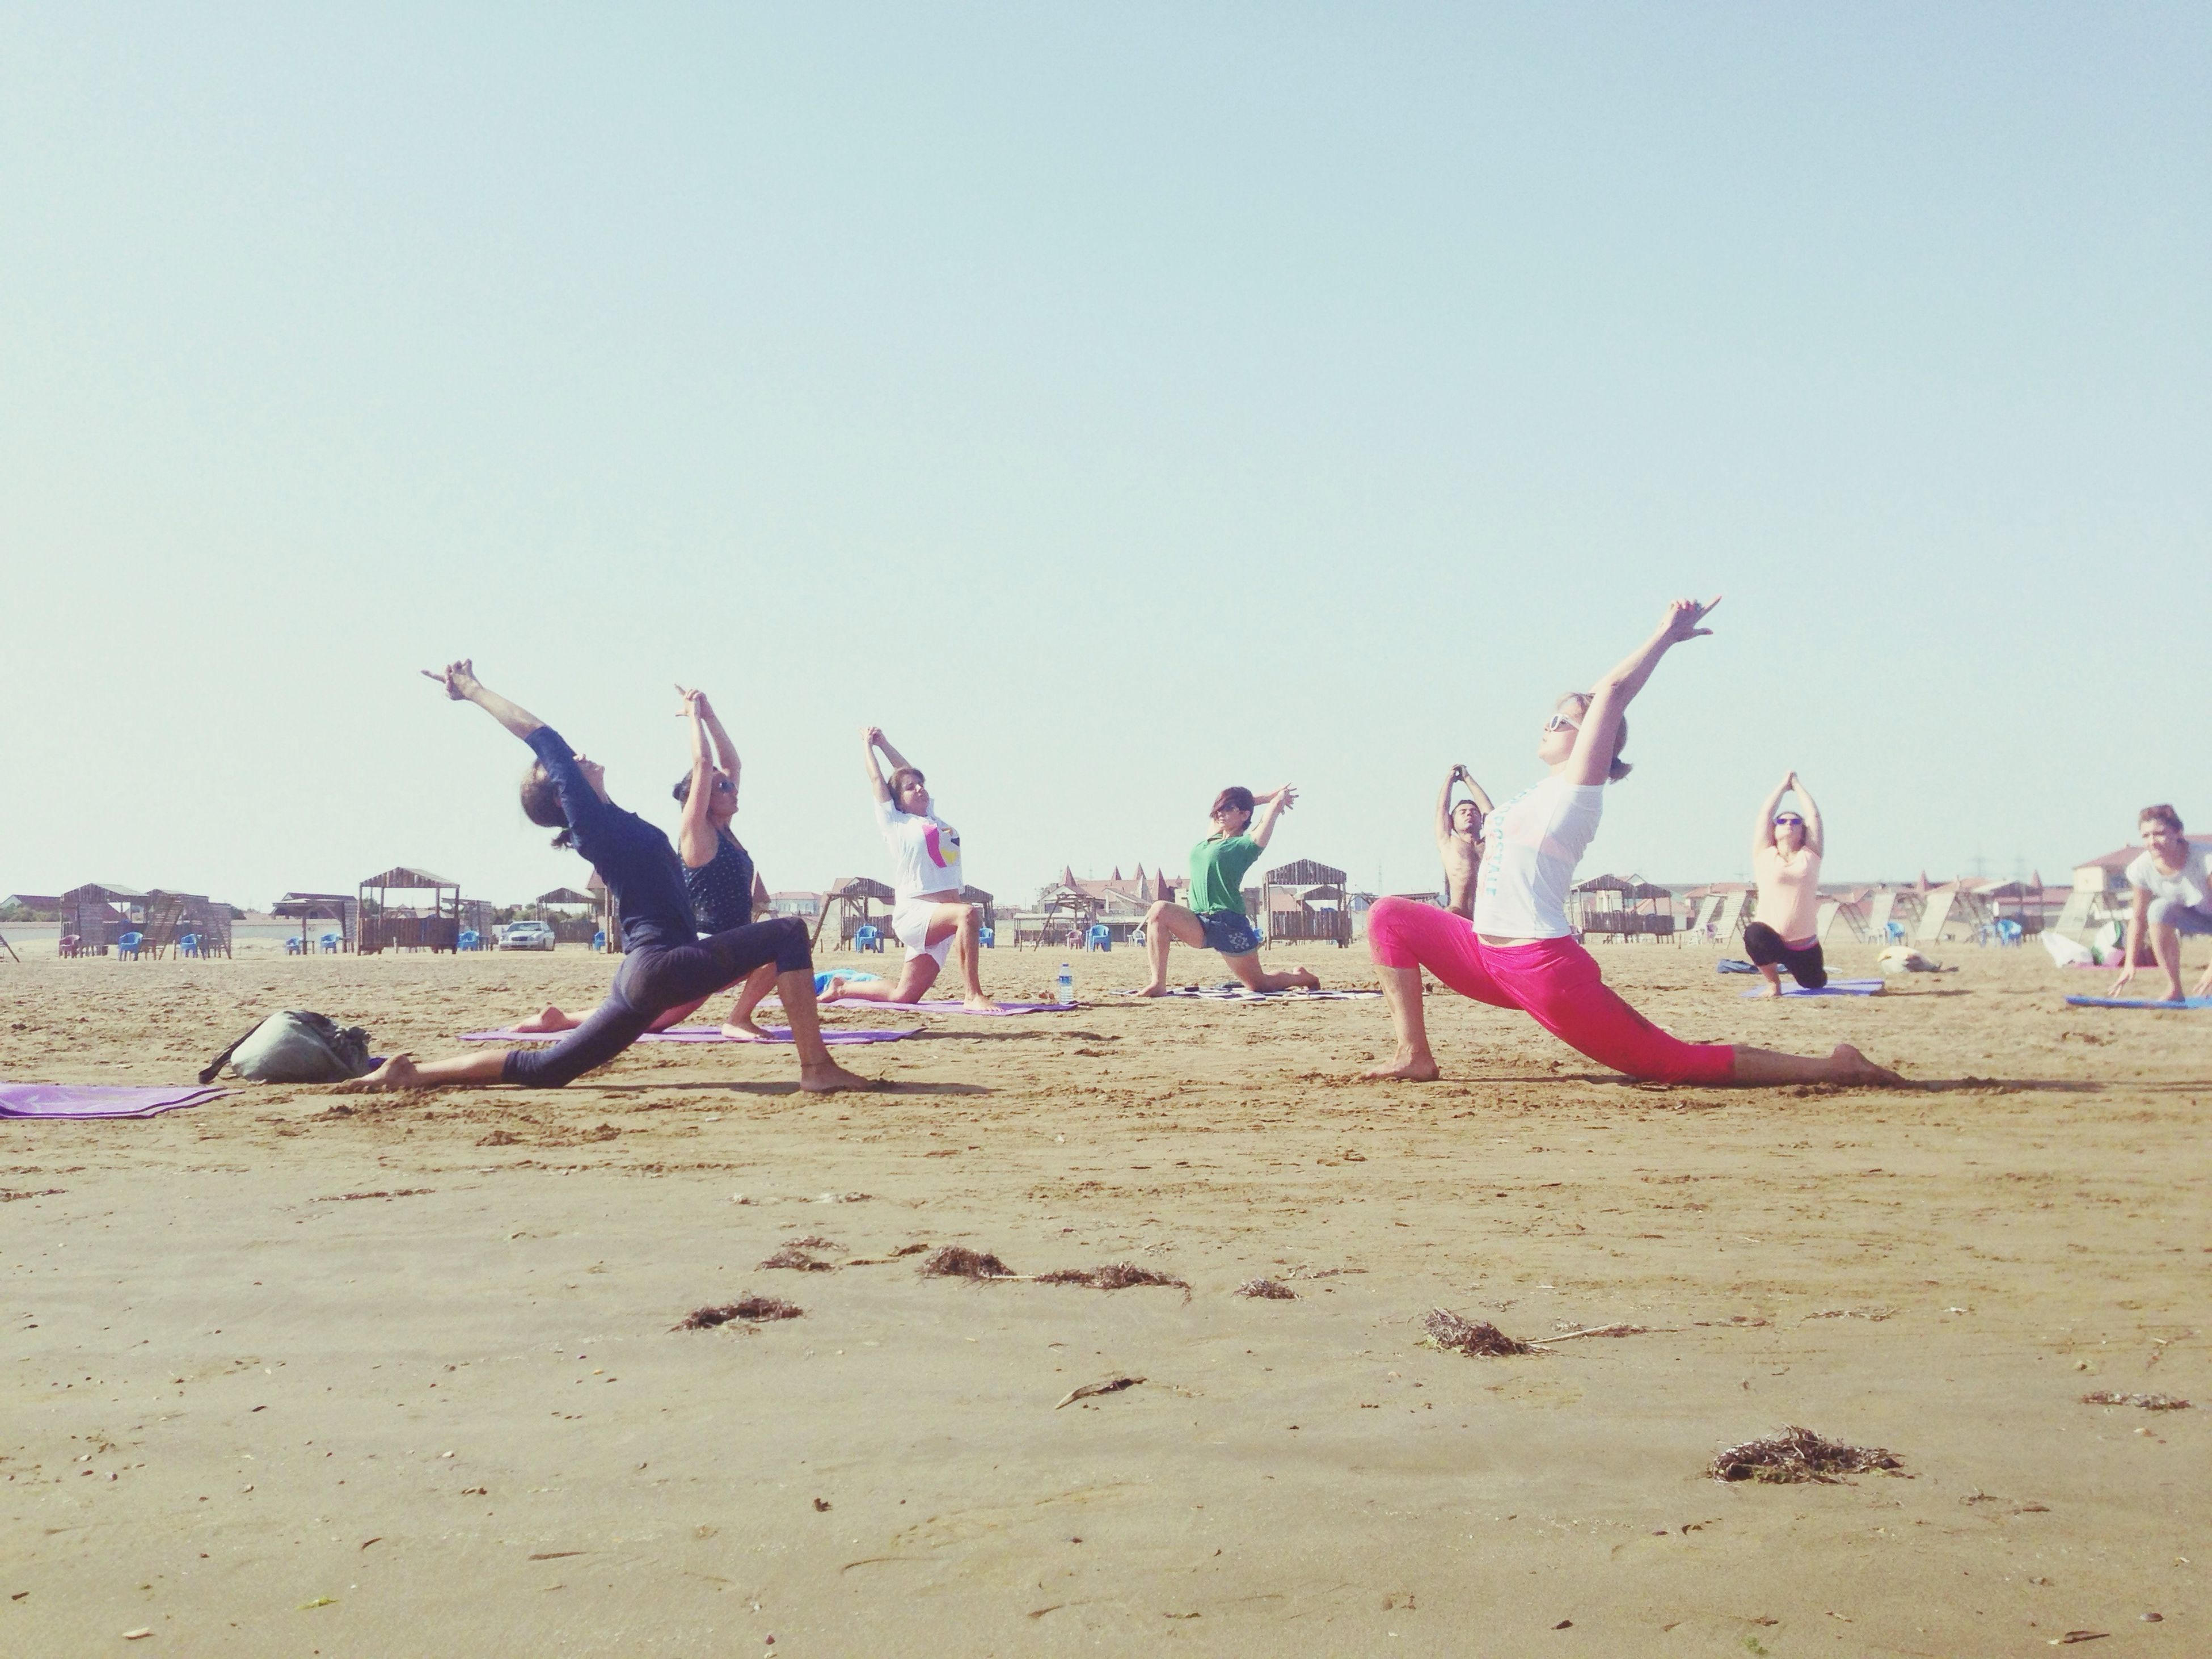 beach, sand, leisure activity, clear sky, lifestyles, large group of people, enjoyment, men, copy space, fun, vacations, shore, sea, person, full length, day, mid-air, tourist, outdoors